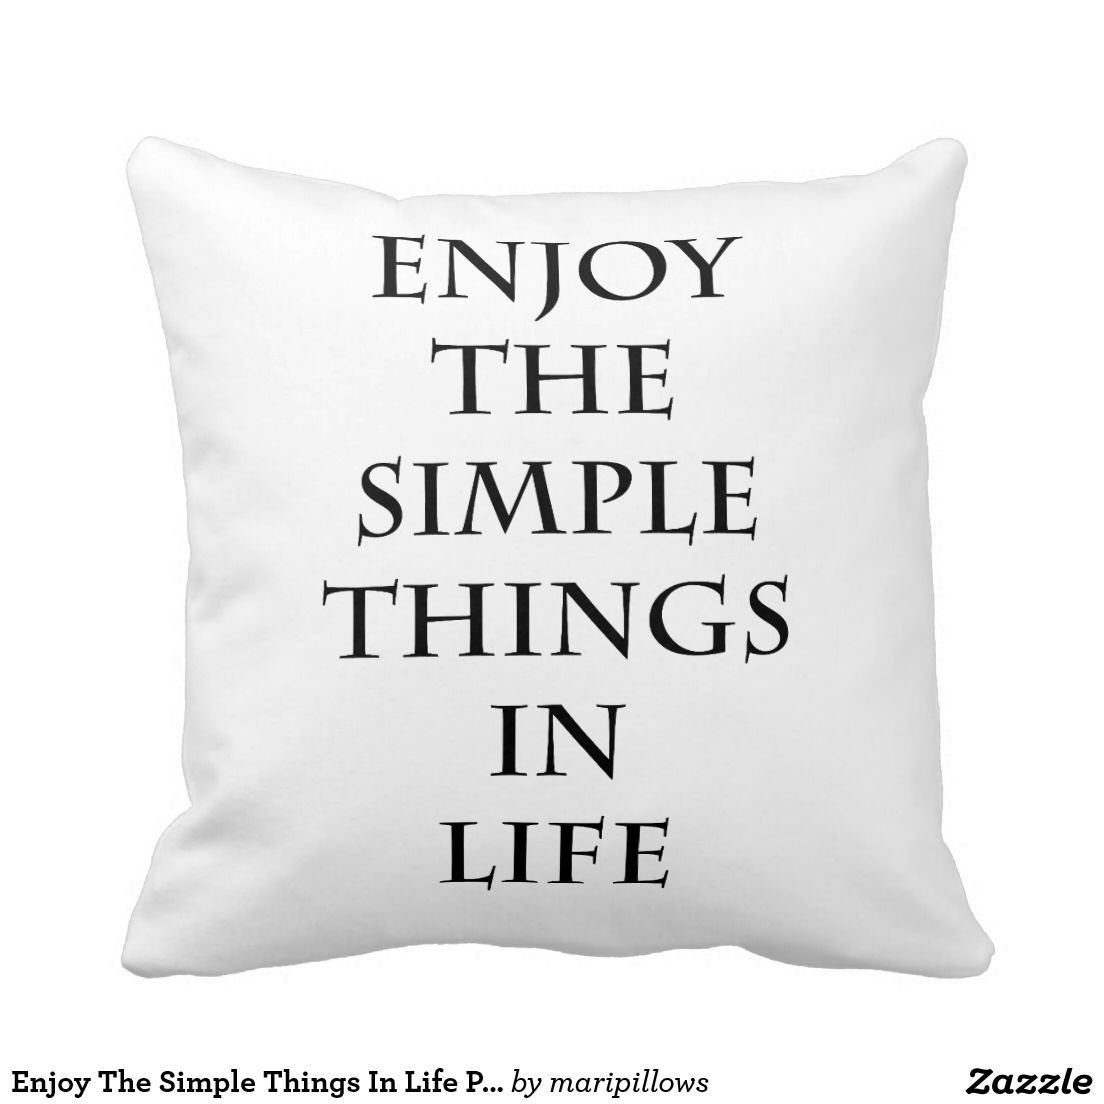 Enjoy The Simple Things In Life Pillow Pillows Throw Pillows Life